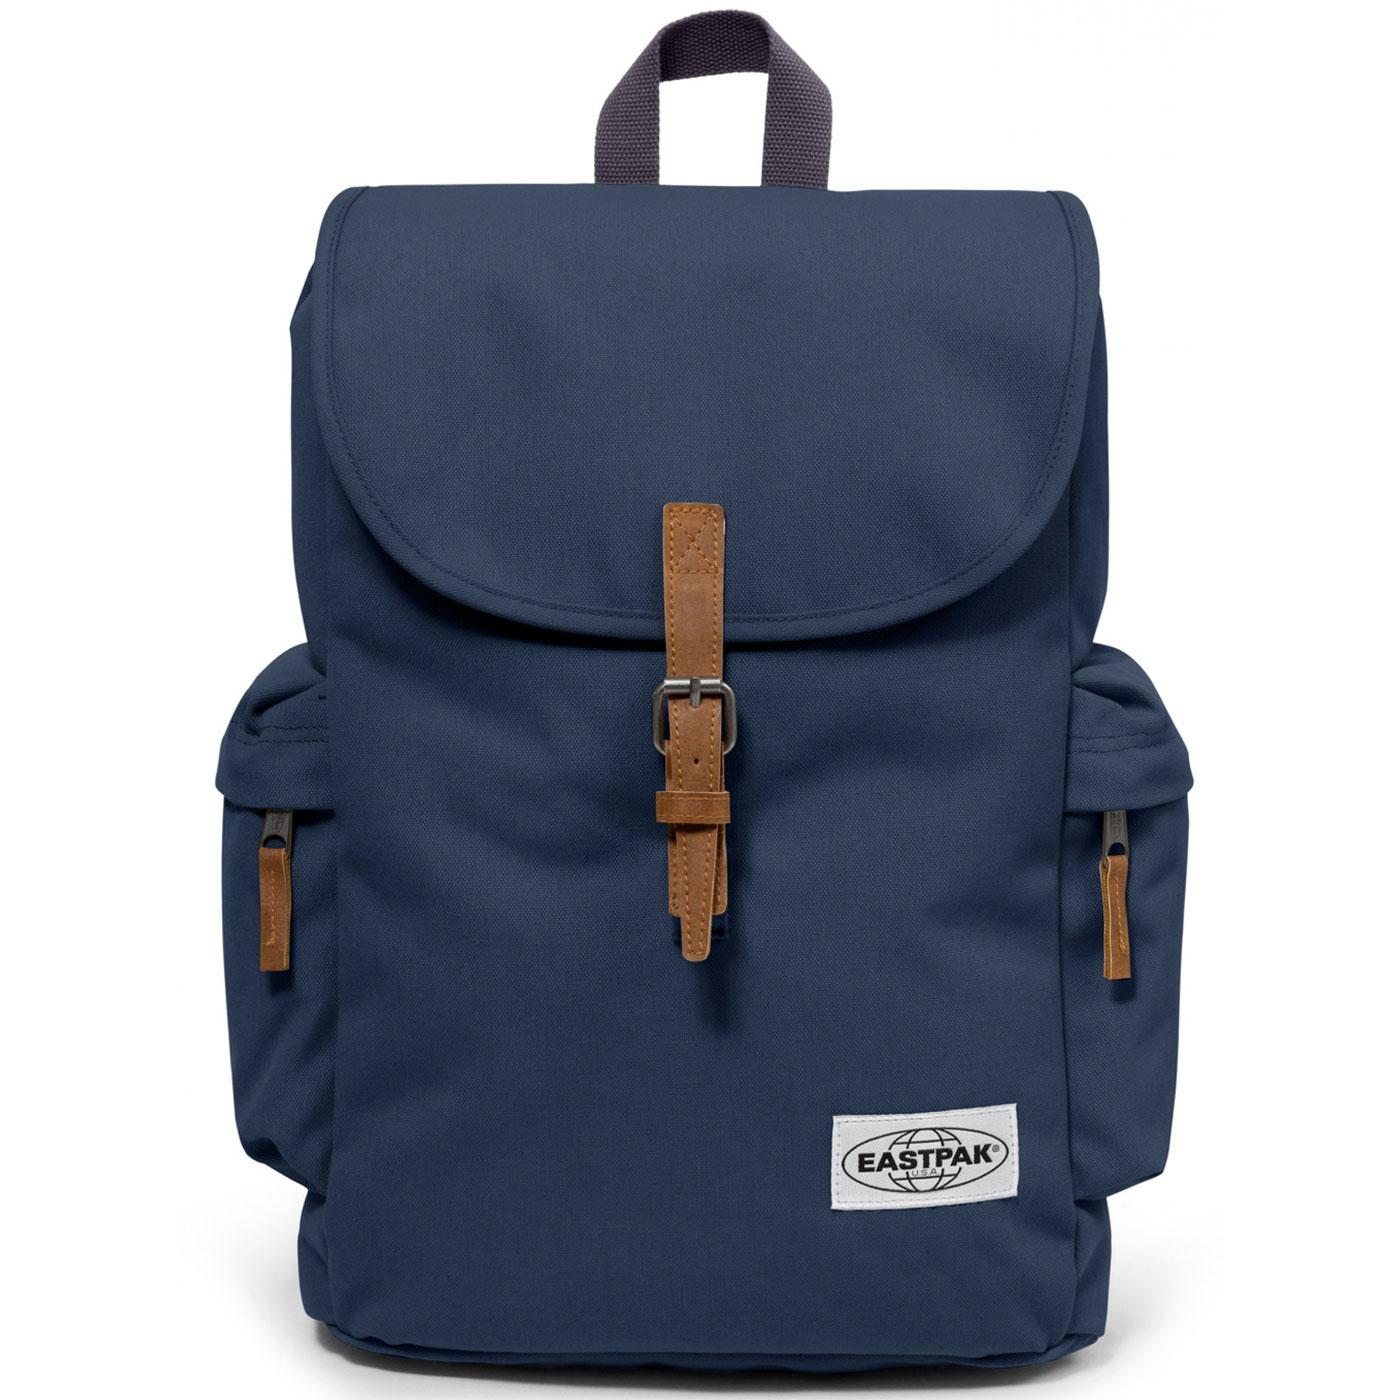 Austin EASTPAK Retro Laptop Backpack OPGRADE NIGHT